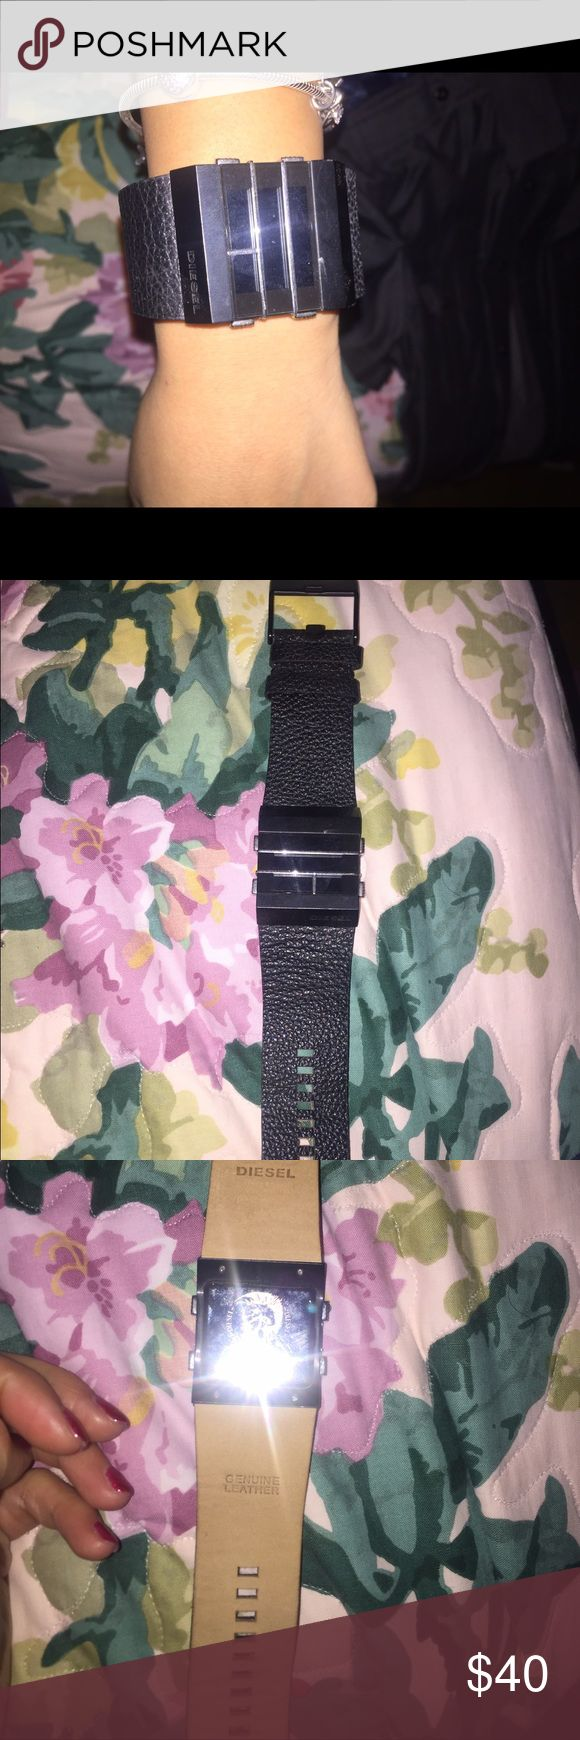 Genuine leather unisex diesel watch Beautiful diesel black leather watch. Good condition. Will need battery Diesel Accessories Watches